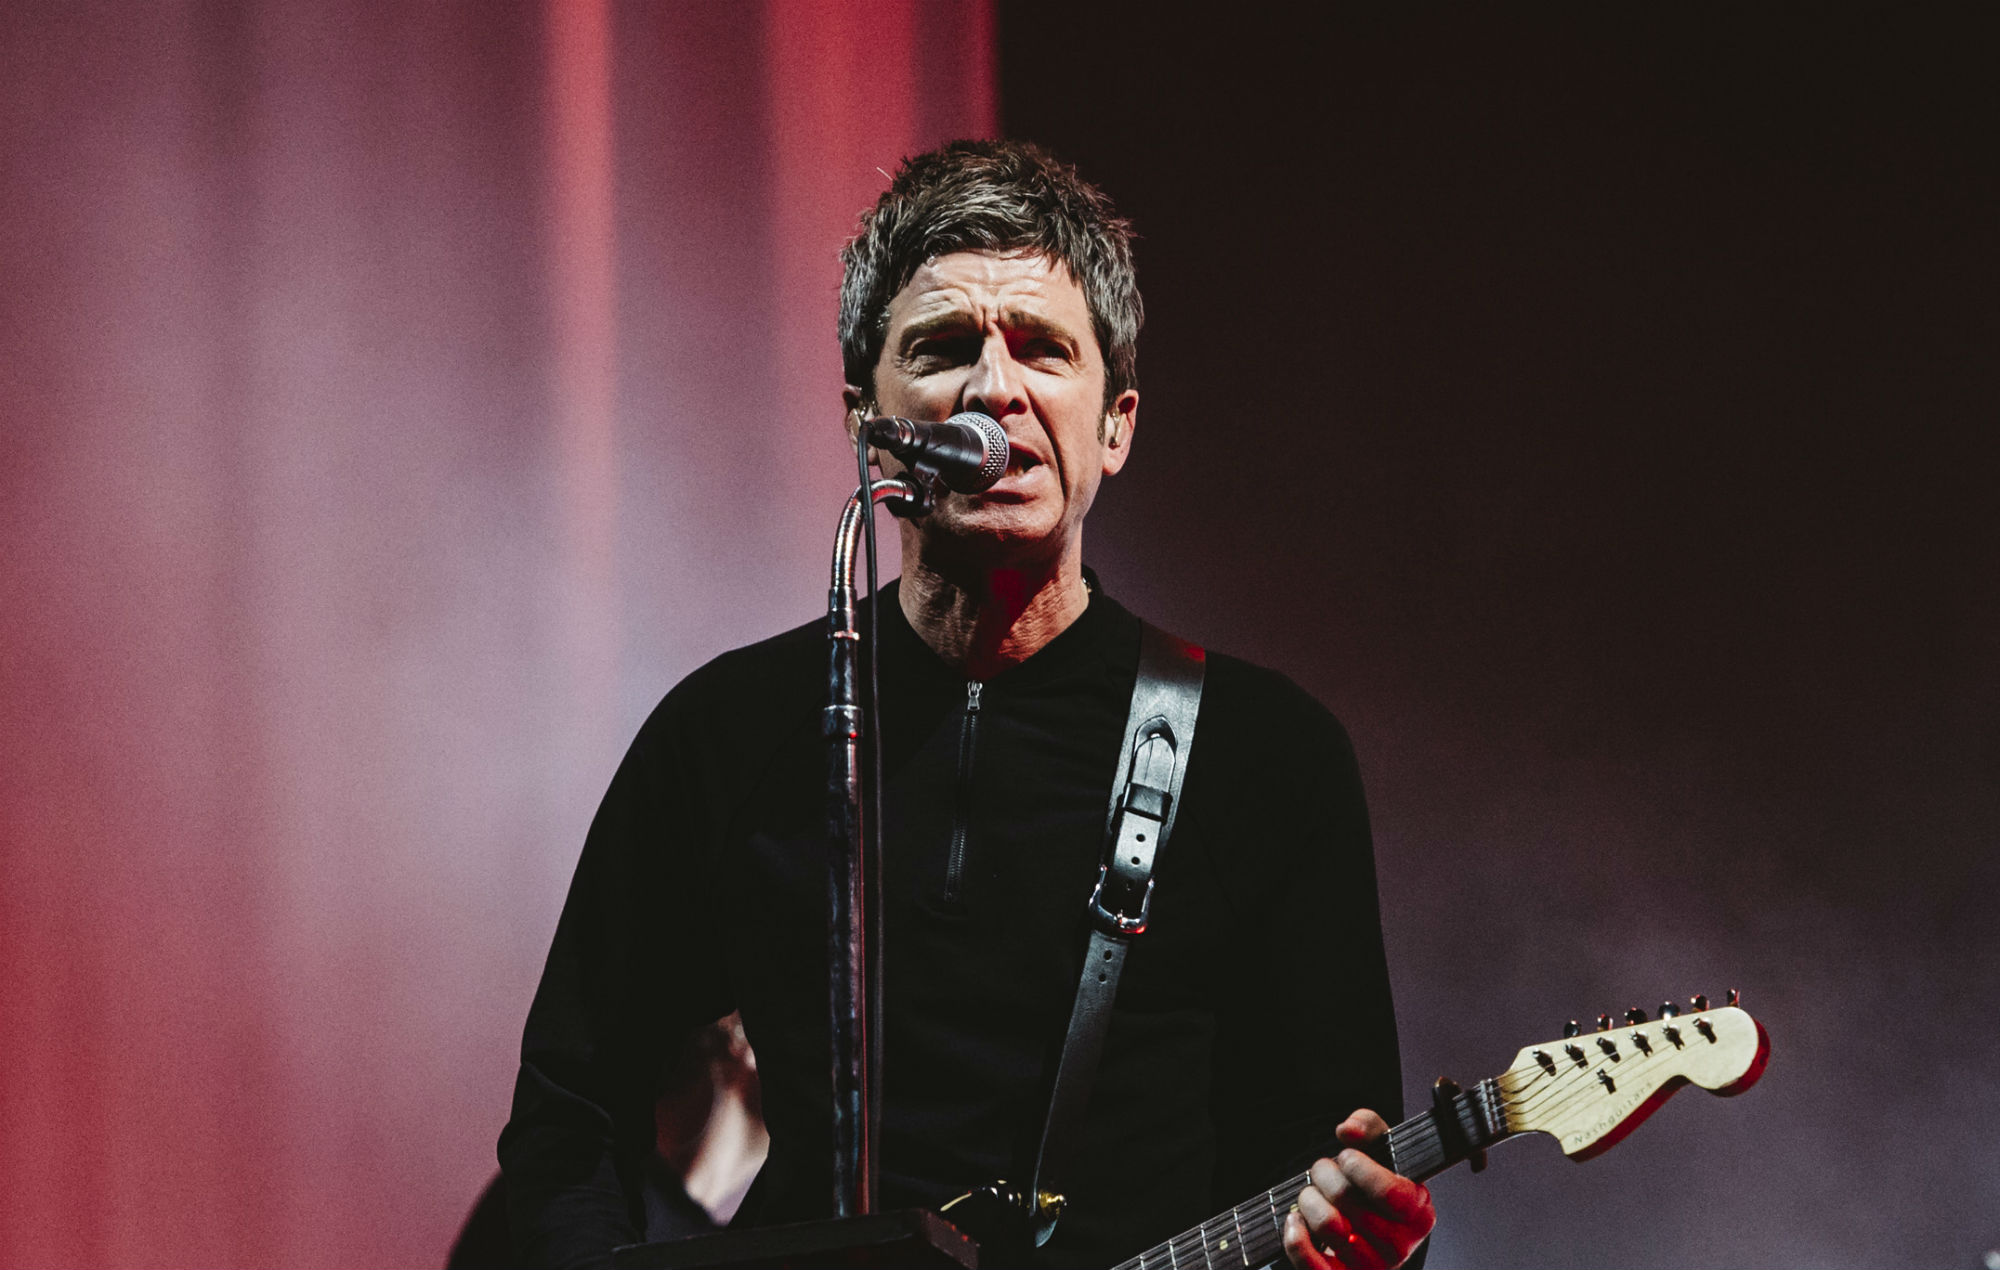 Noel Gallagher's High Flying Birds unveil new track 'Come On Outside'